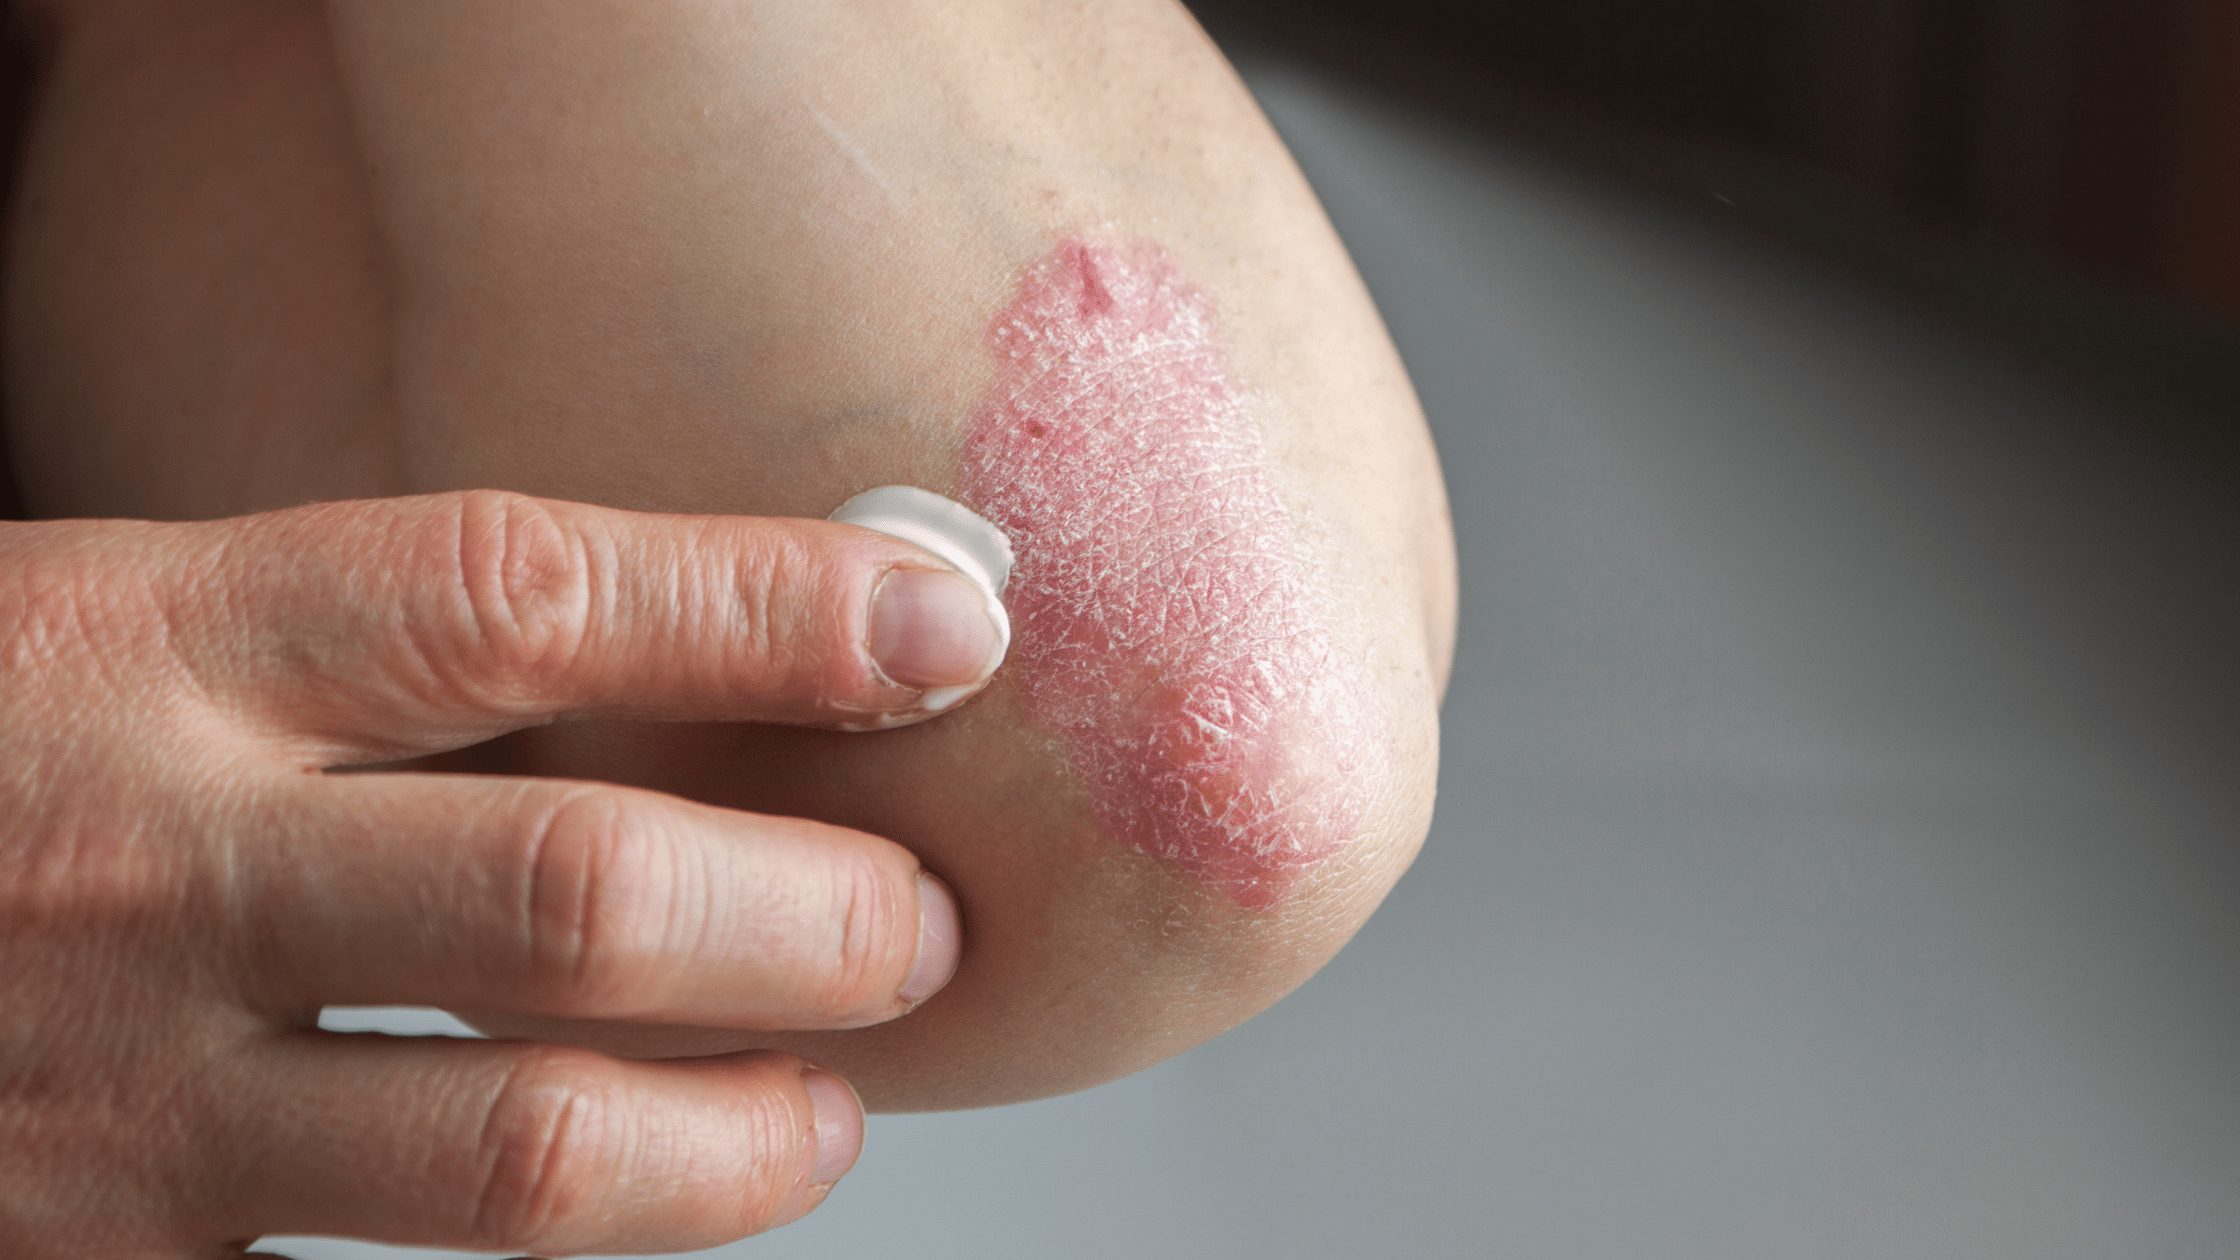 Person's elbow with psoriasis applying ointment